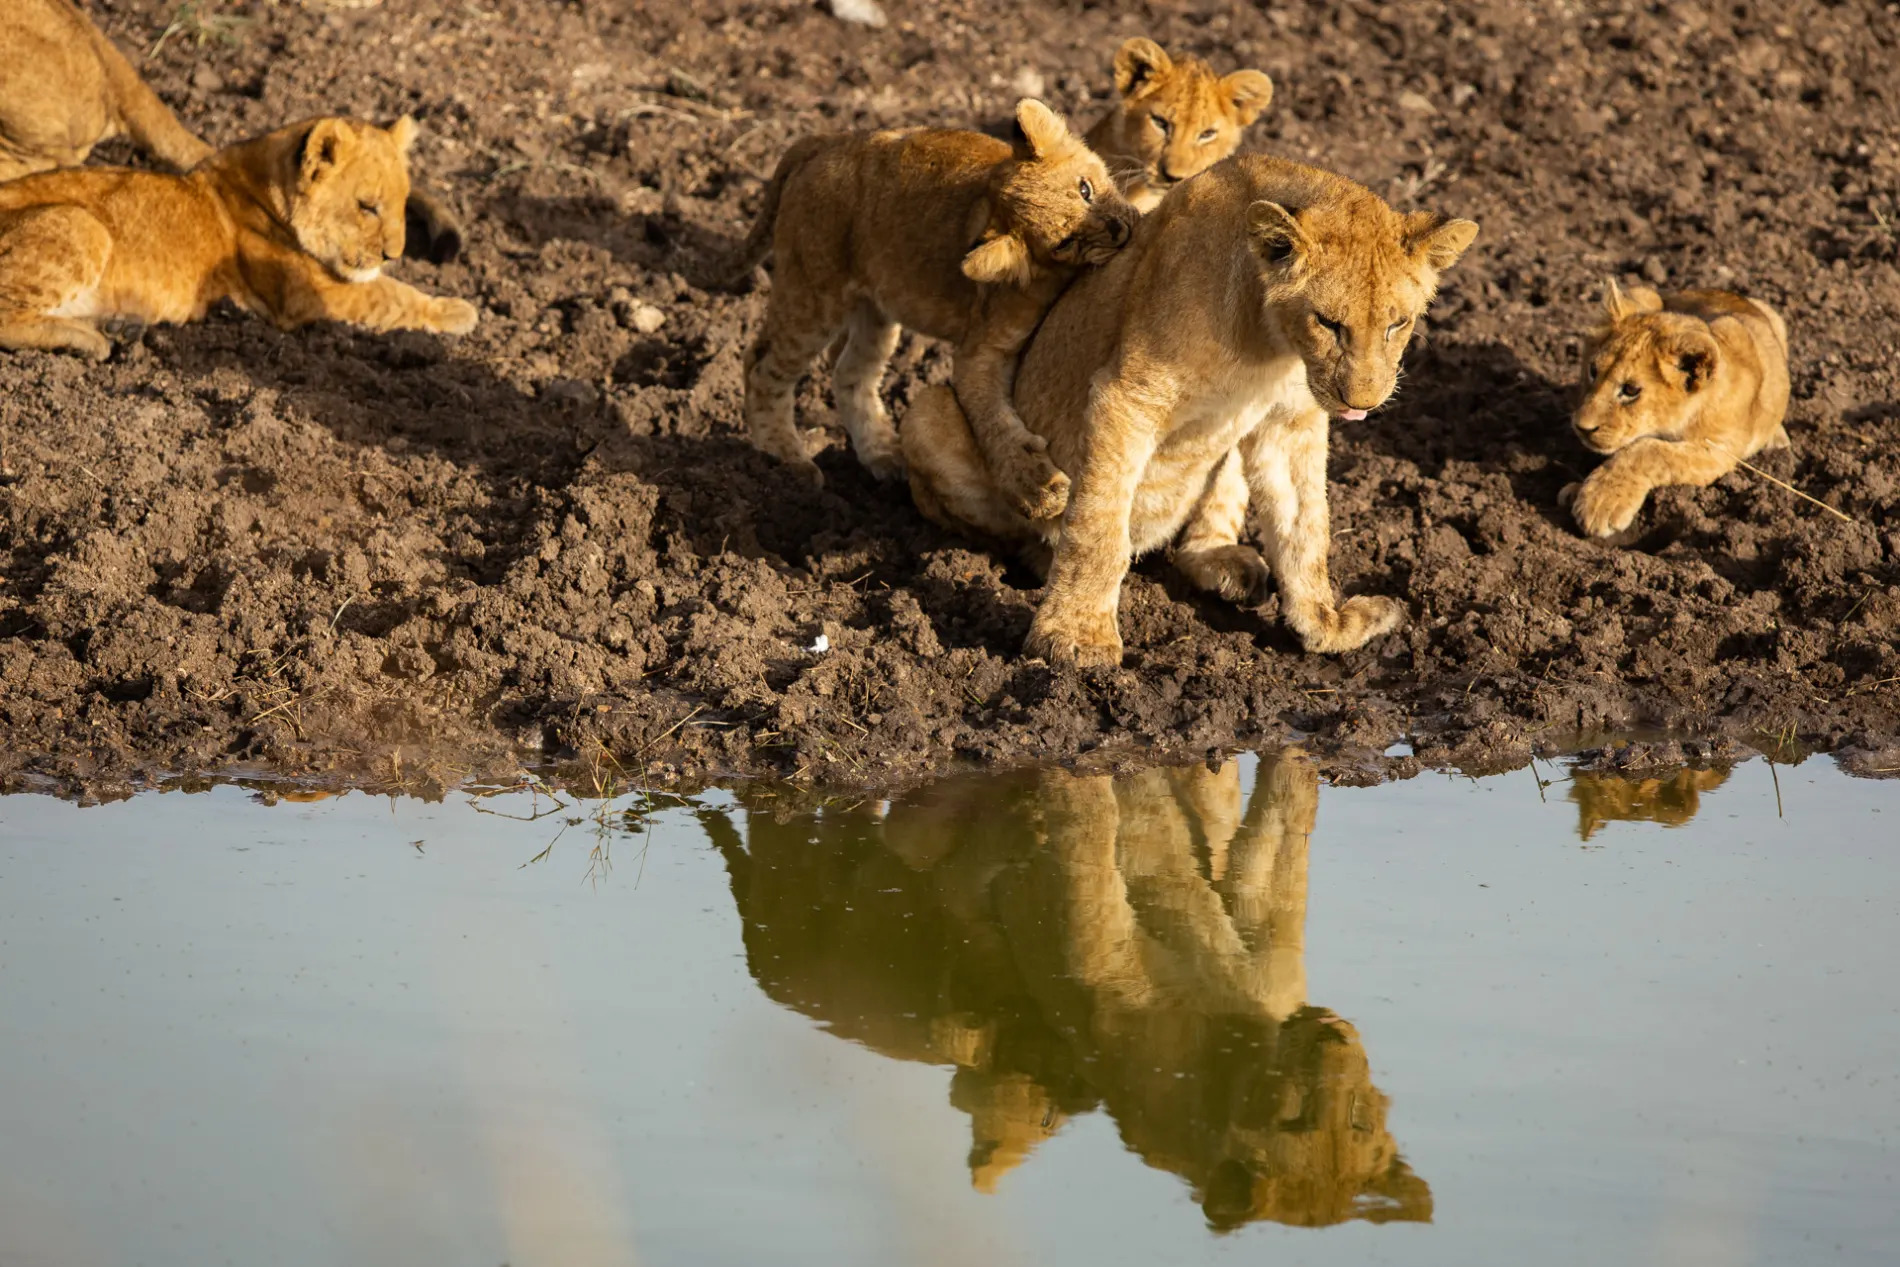 Lion cubs and water